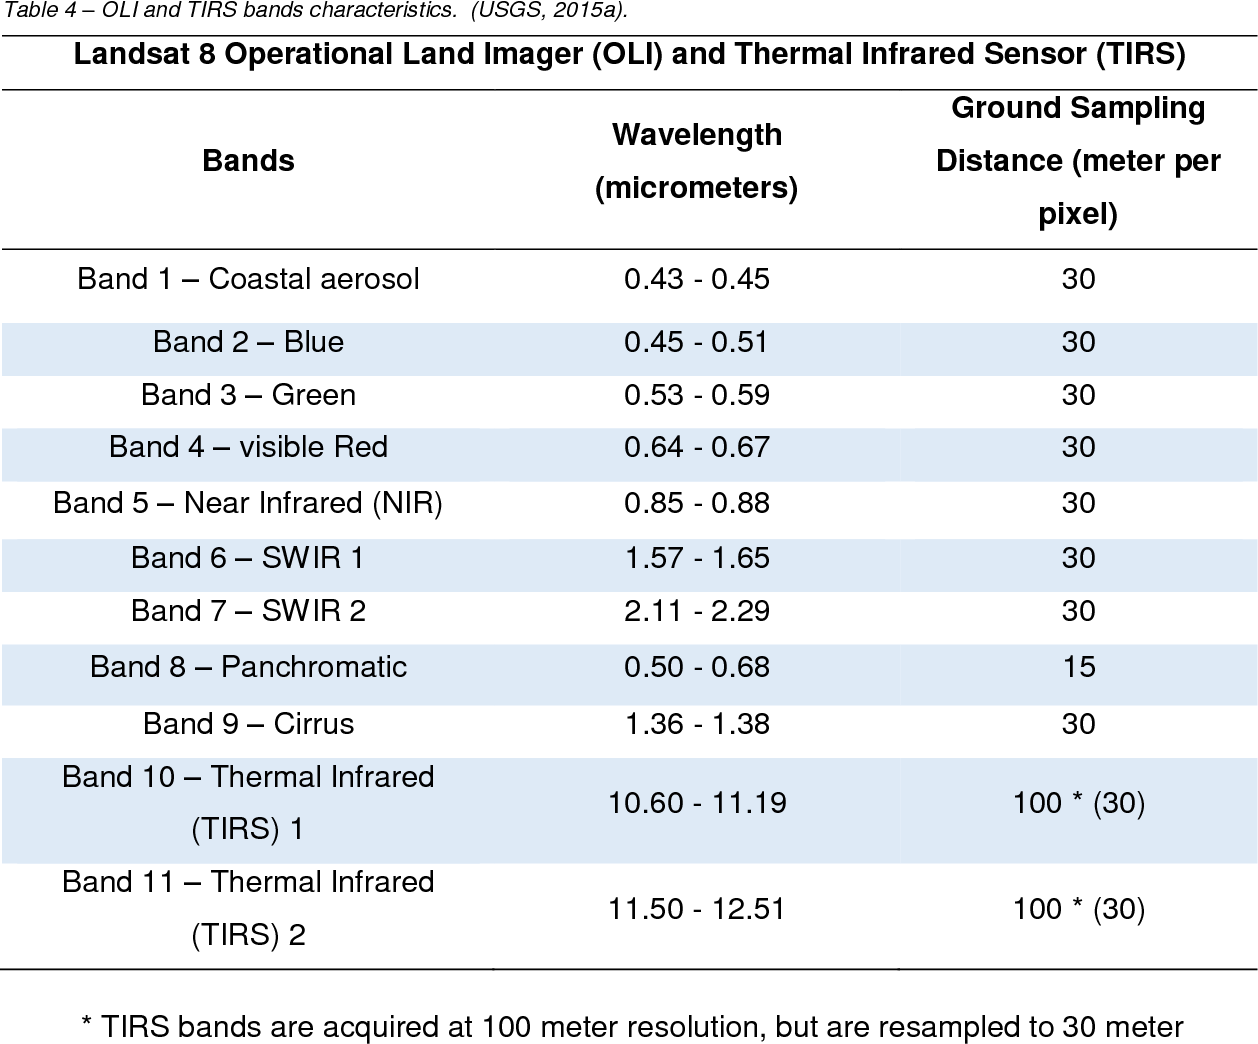 Table 6 from Mapping hydrothermal gold mineralization using